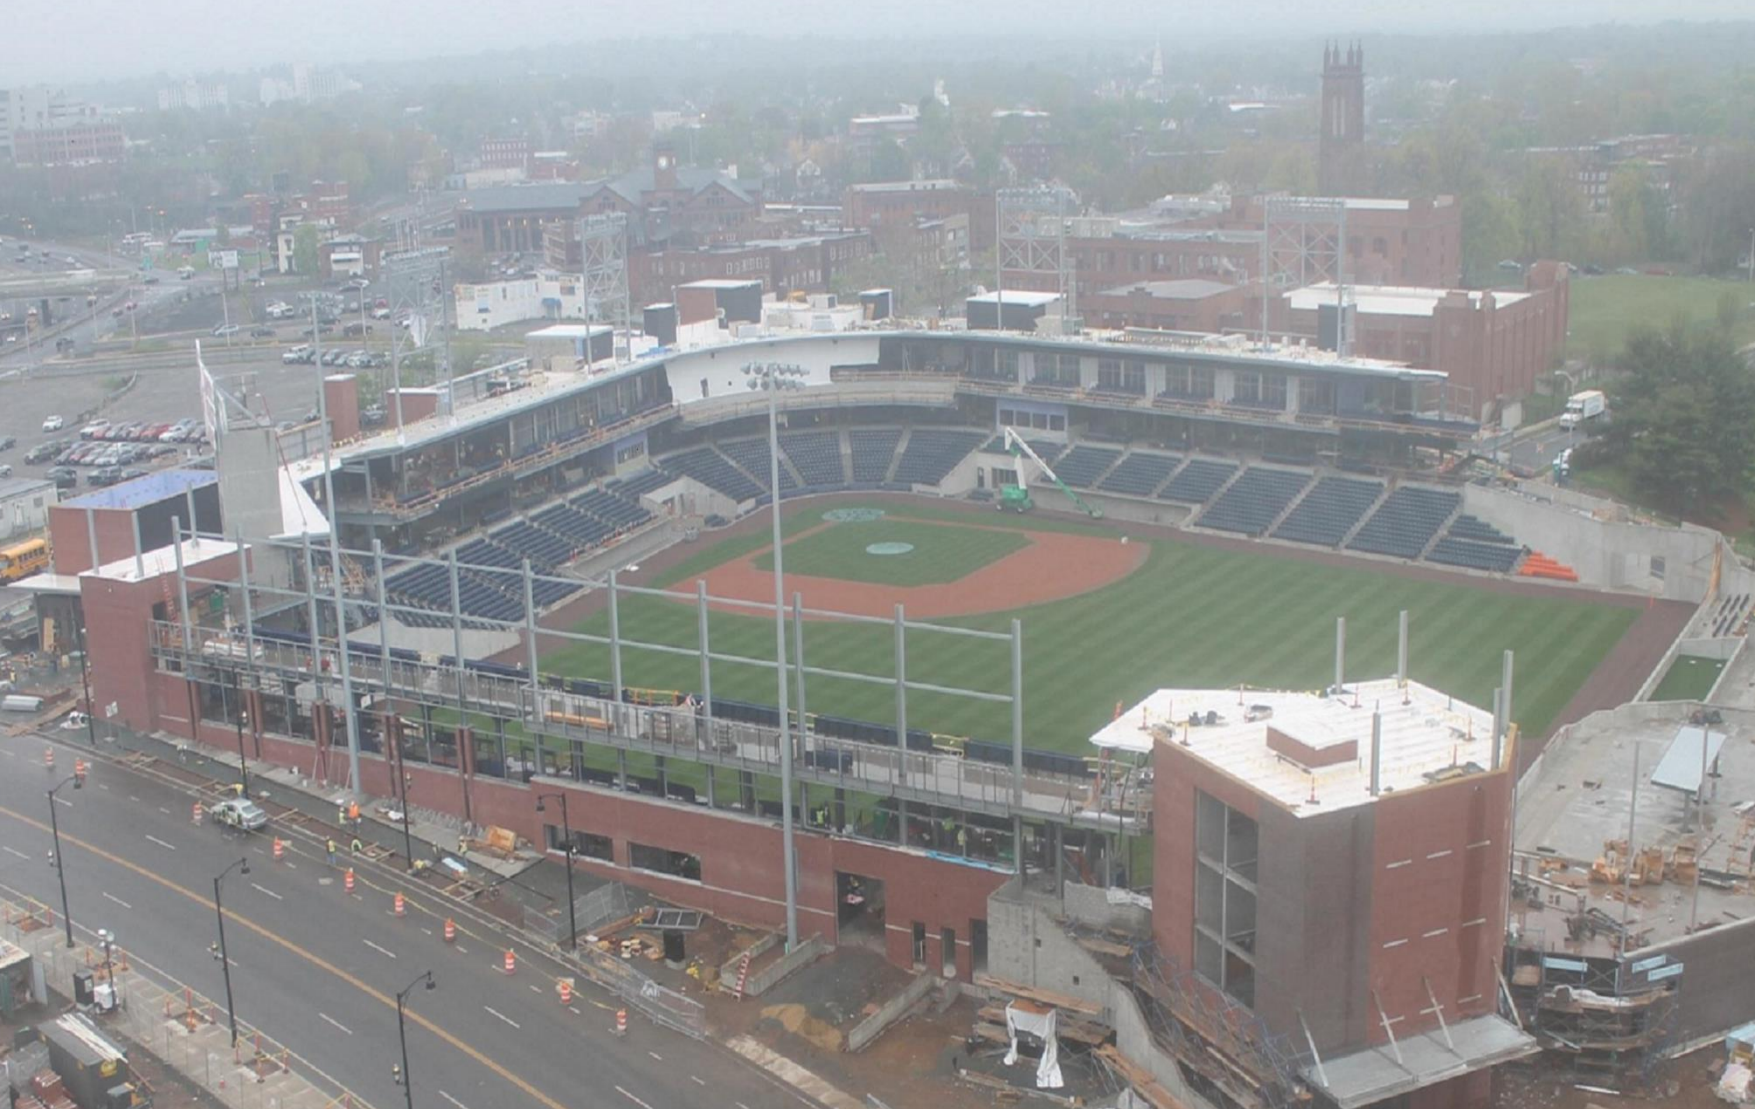 Yard Goats Say Stadium Situation Intolerable Hartford Says Work